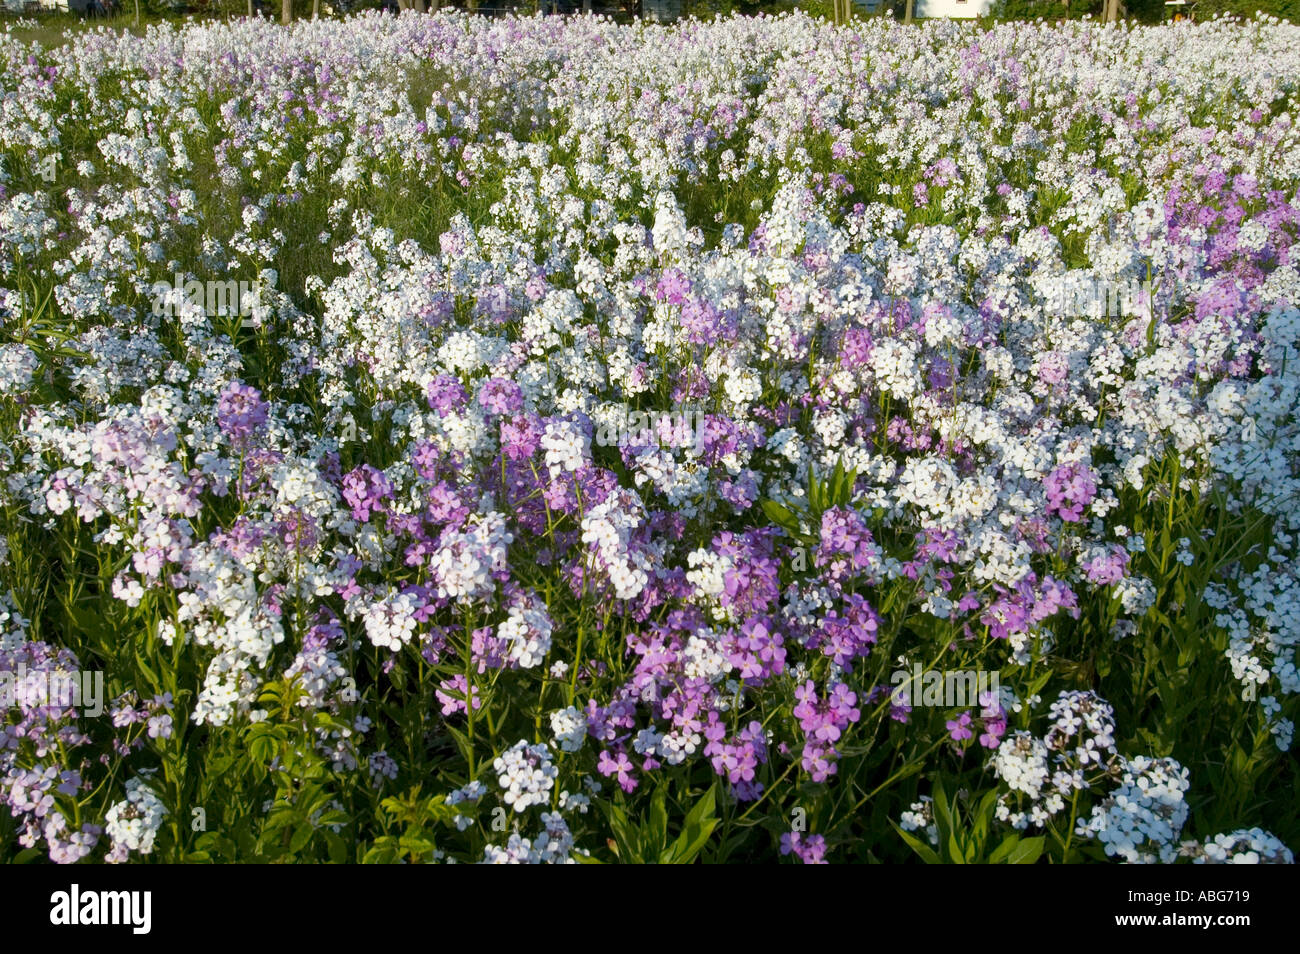 A Field Of Purple And White Wild Flowers Stock Photo 2377496 Alamy